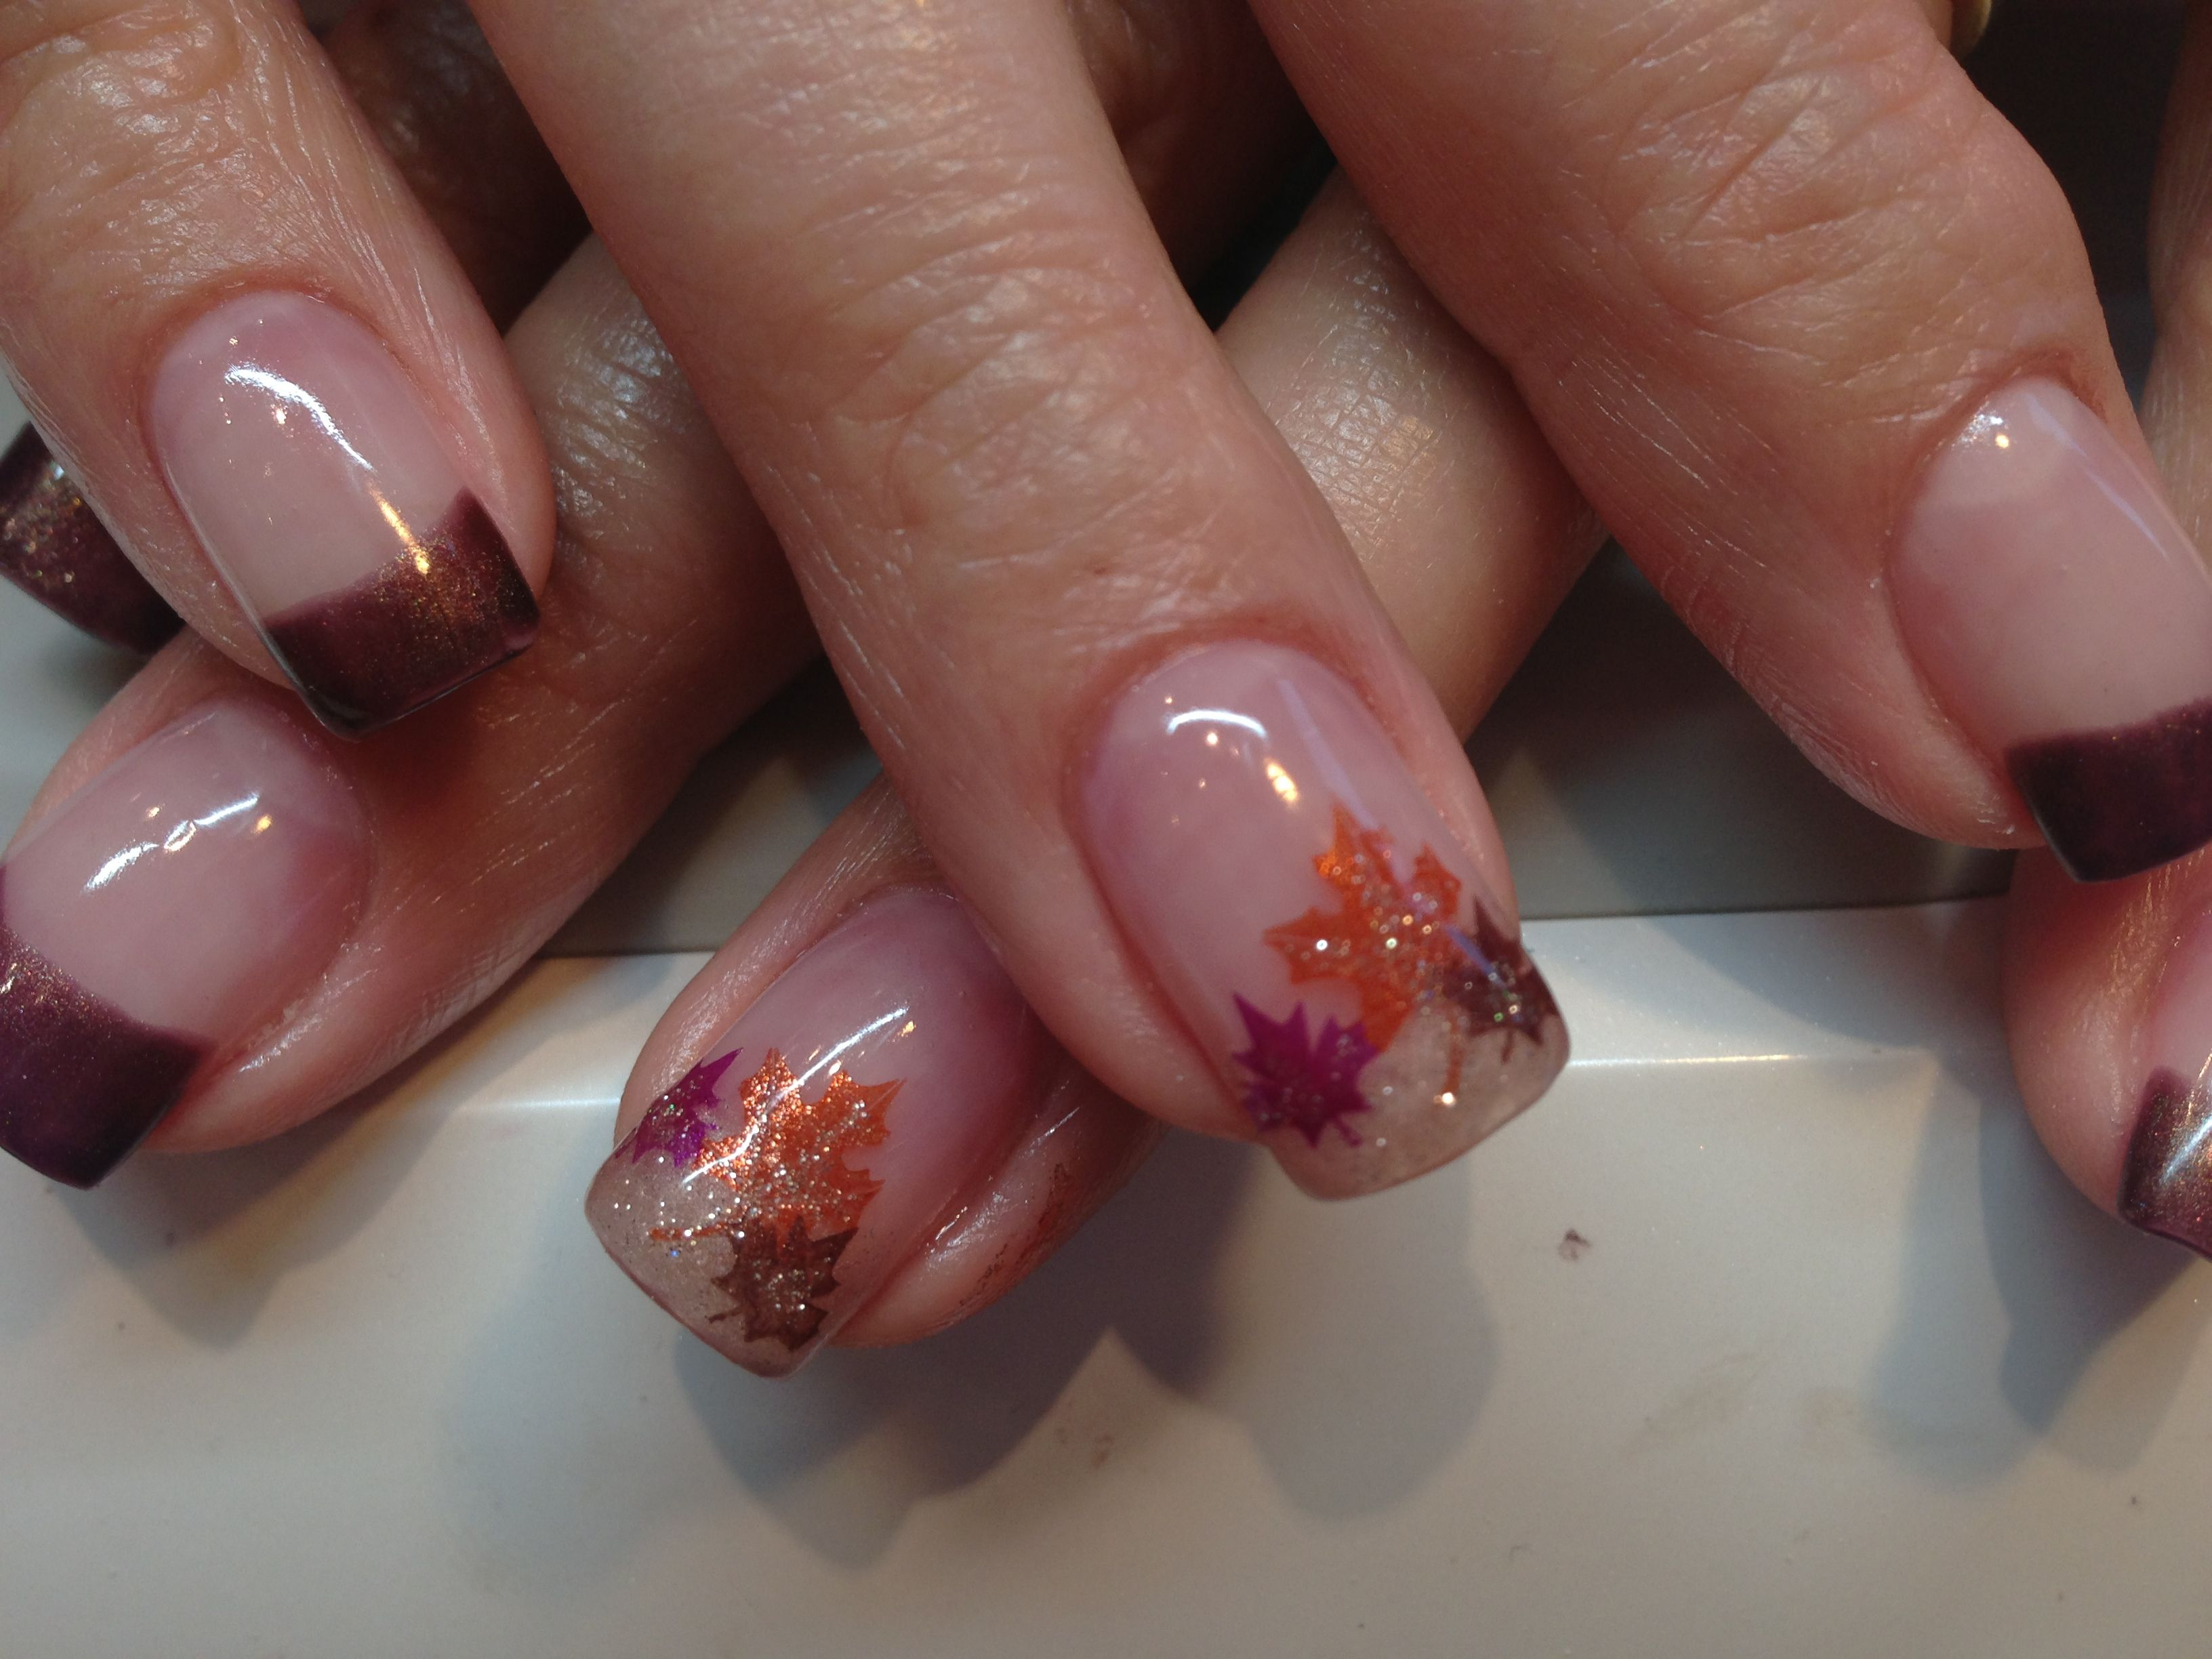 Autumn leaves nail art on a golden french manicure ♡ | saoirse ...